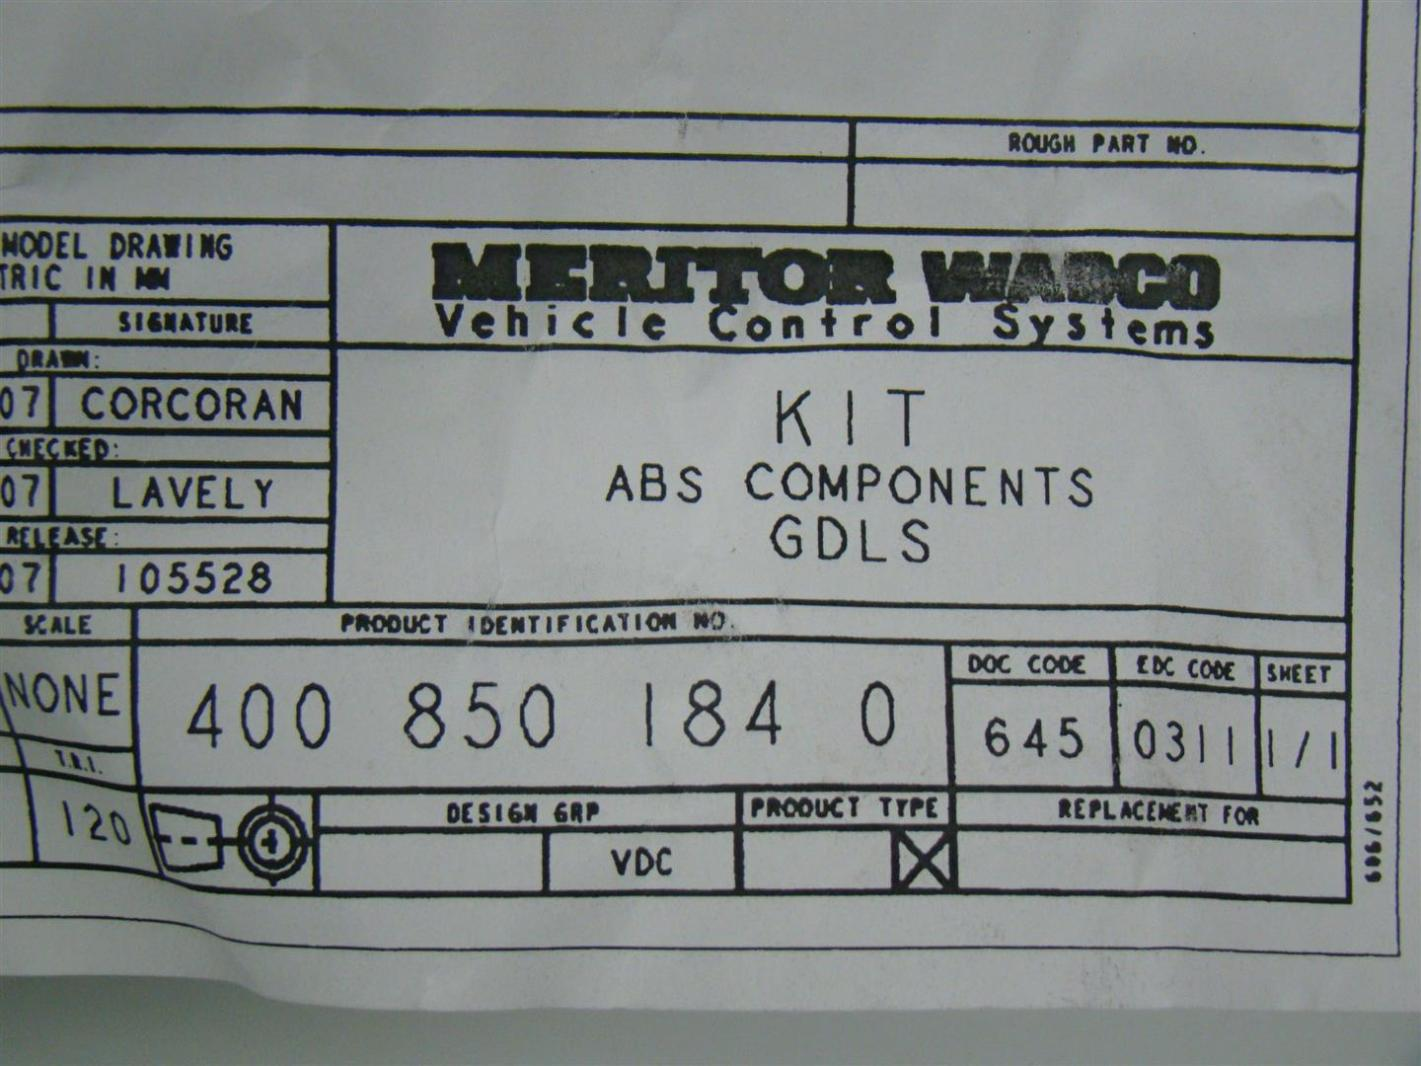 Wabco ABS Components Kit Vehicle Control Systems ECU & Valves 377053 400  850 184